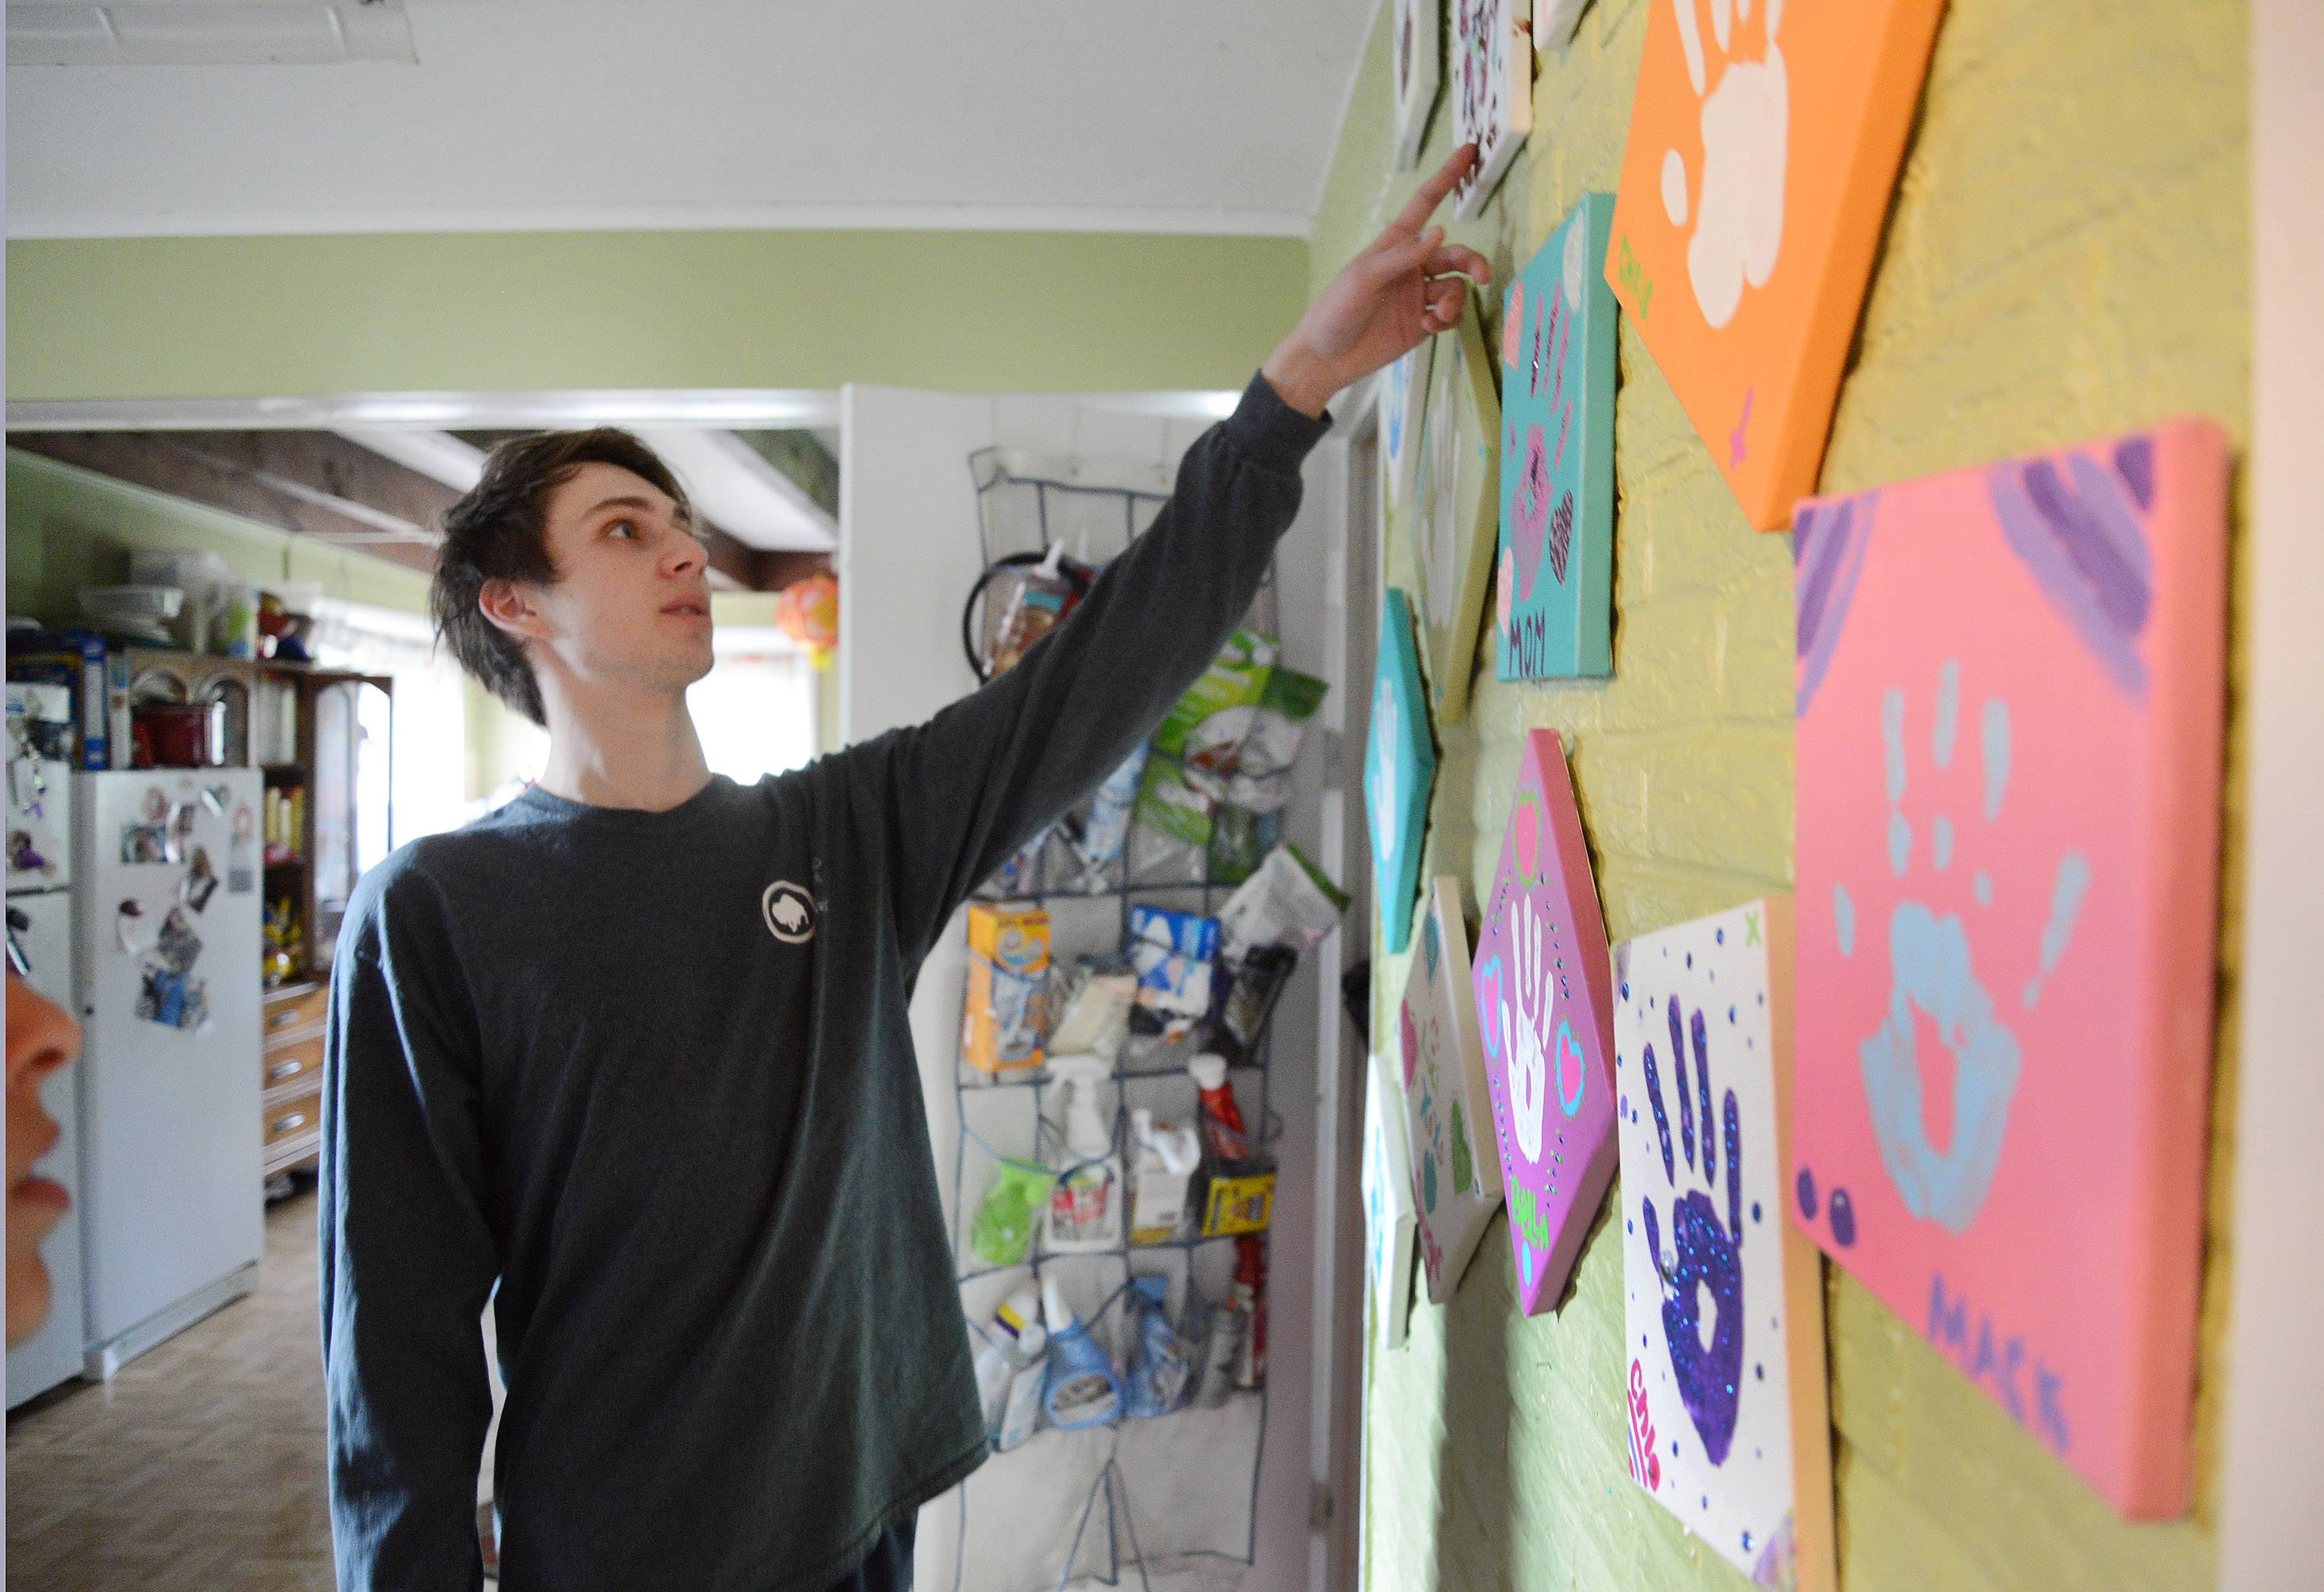 Chris Przybylo shows the handprints he and his friends made, which are now displayed on his family's kitchen wall.